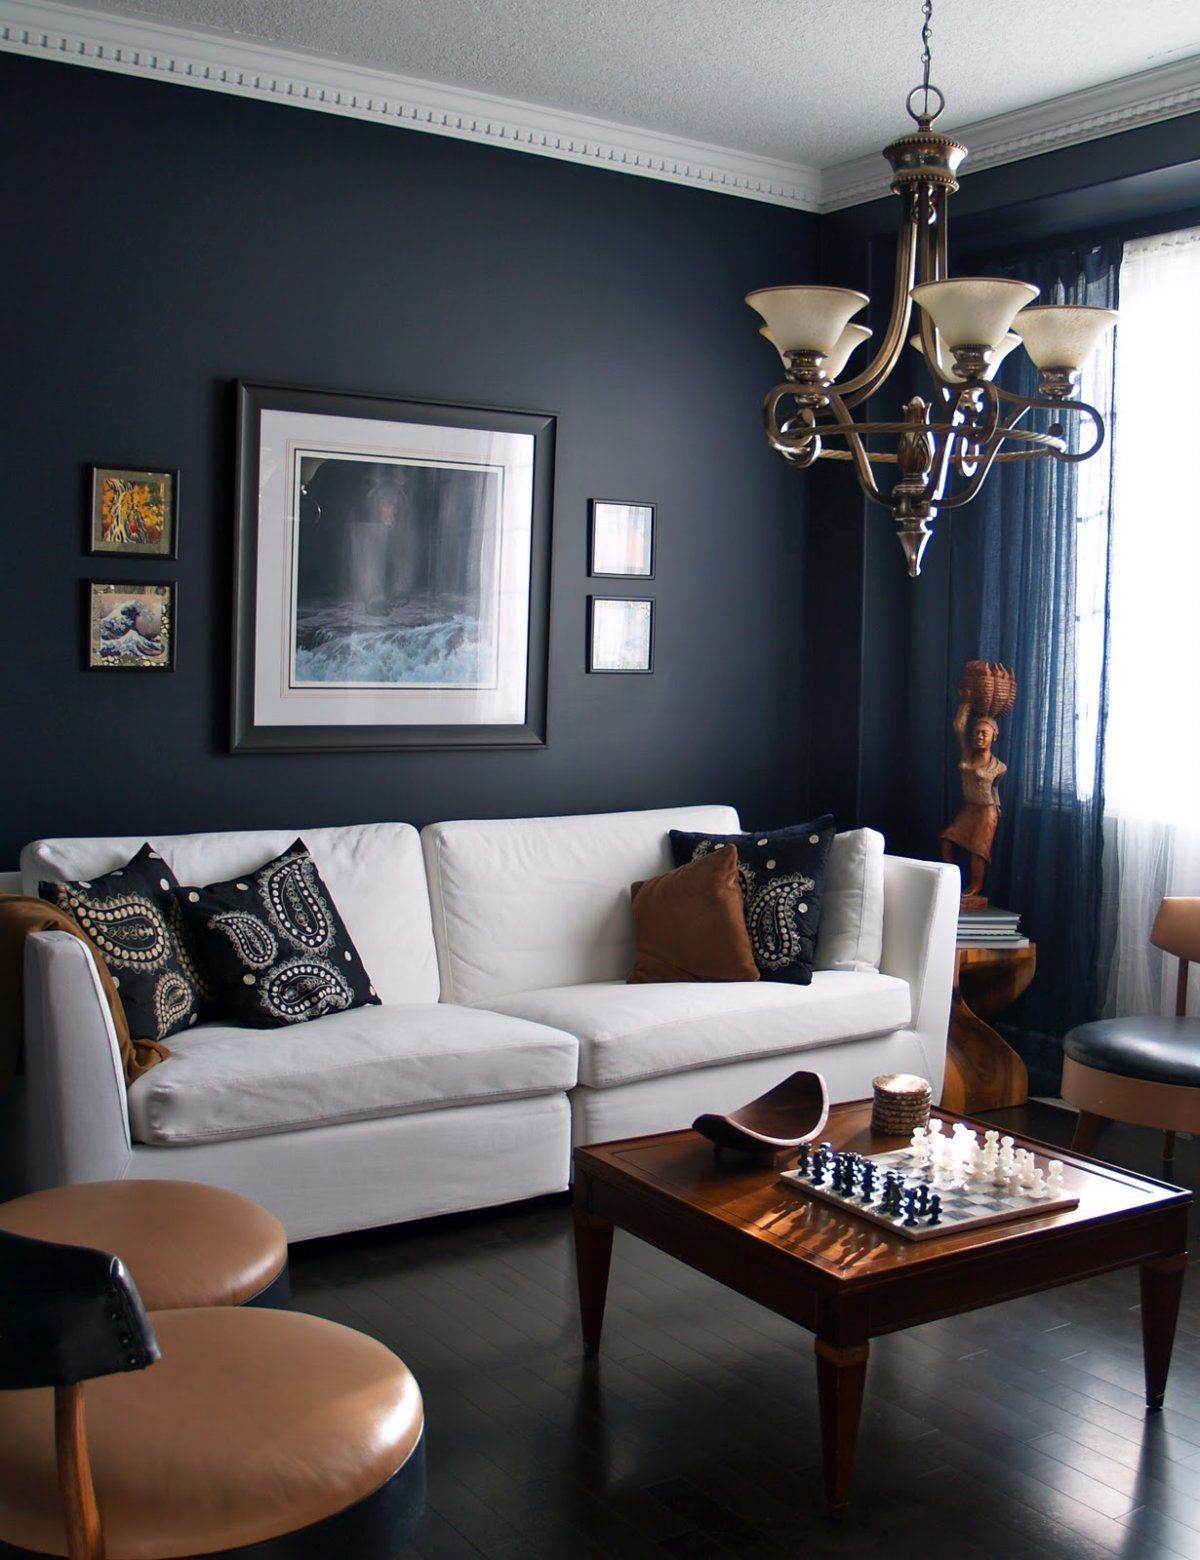 15 Beautiful Dark Blue Wall Design Ideas Dark Living Rooms Navy Living Rooms Navy Blue Living Room